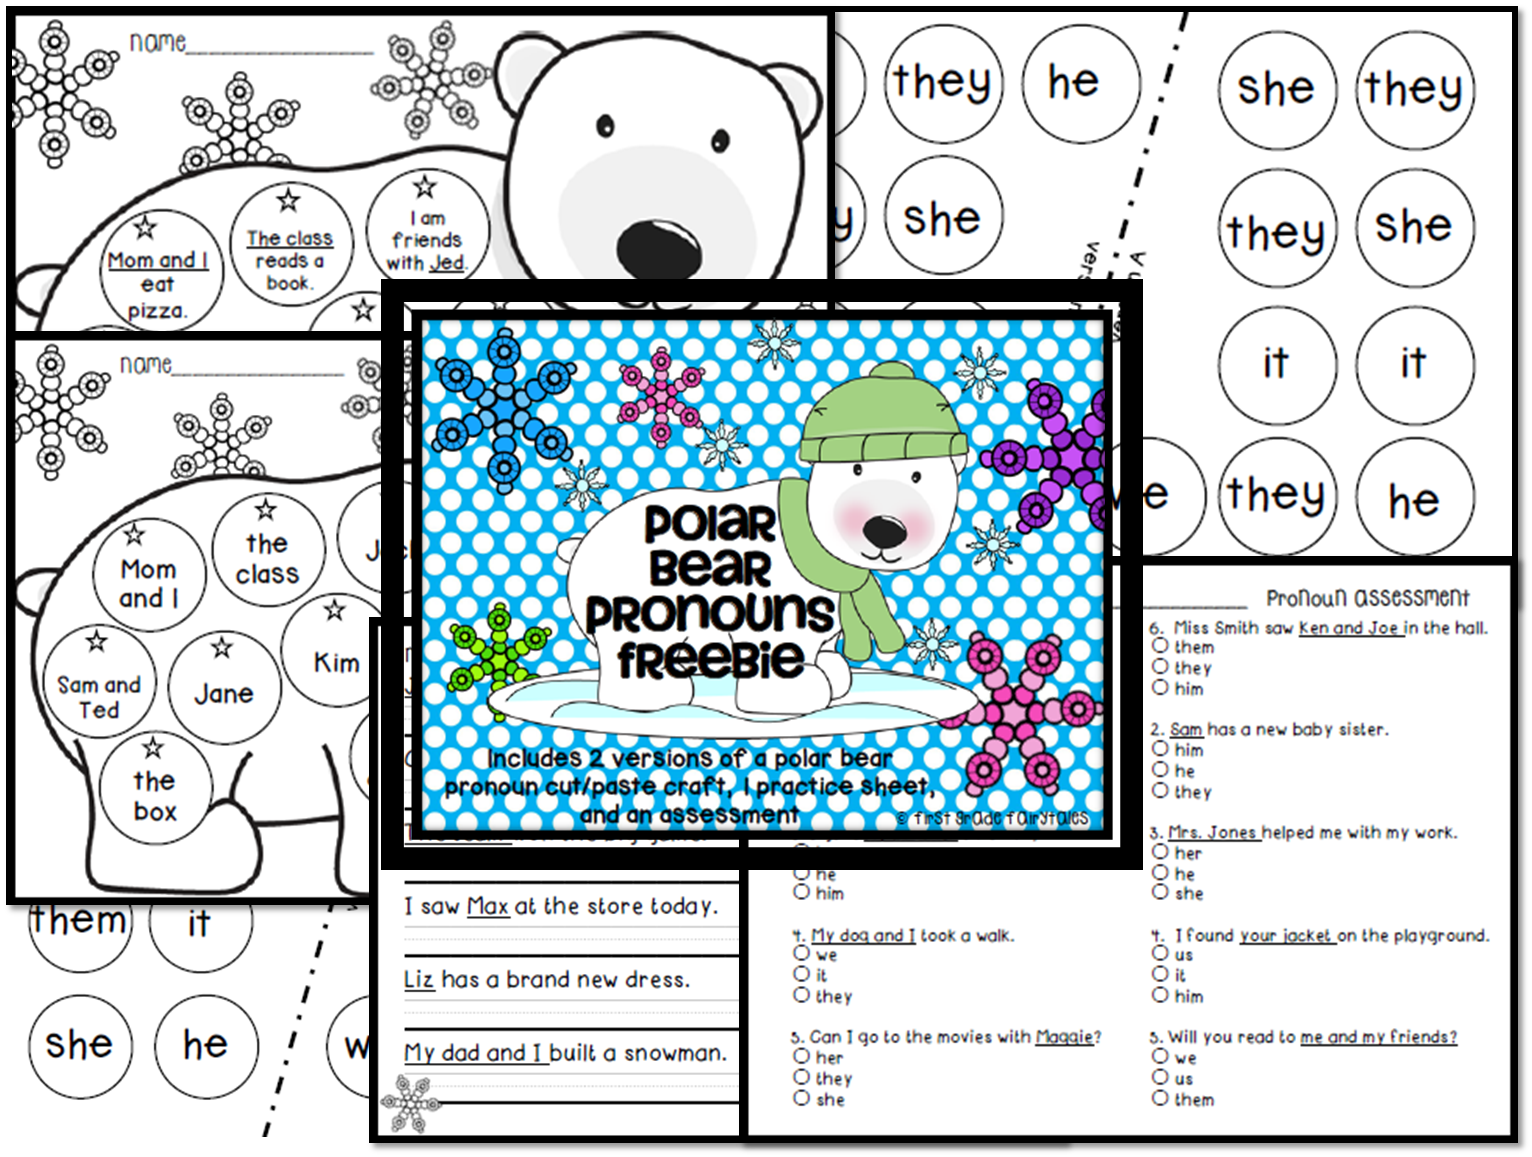 http://www.buysellteach.com/Product-Detail/1448/polar-bear-pronoun-freebie